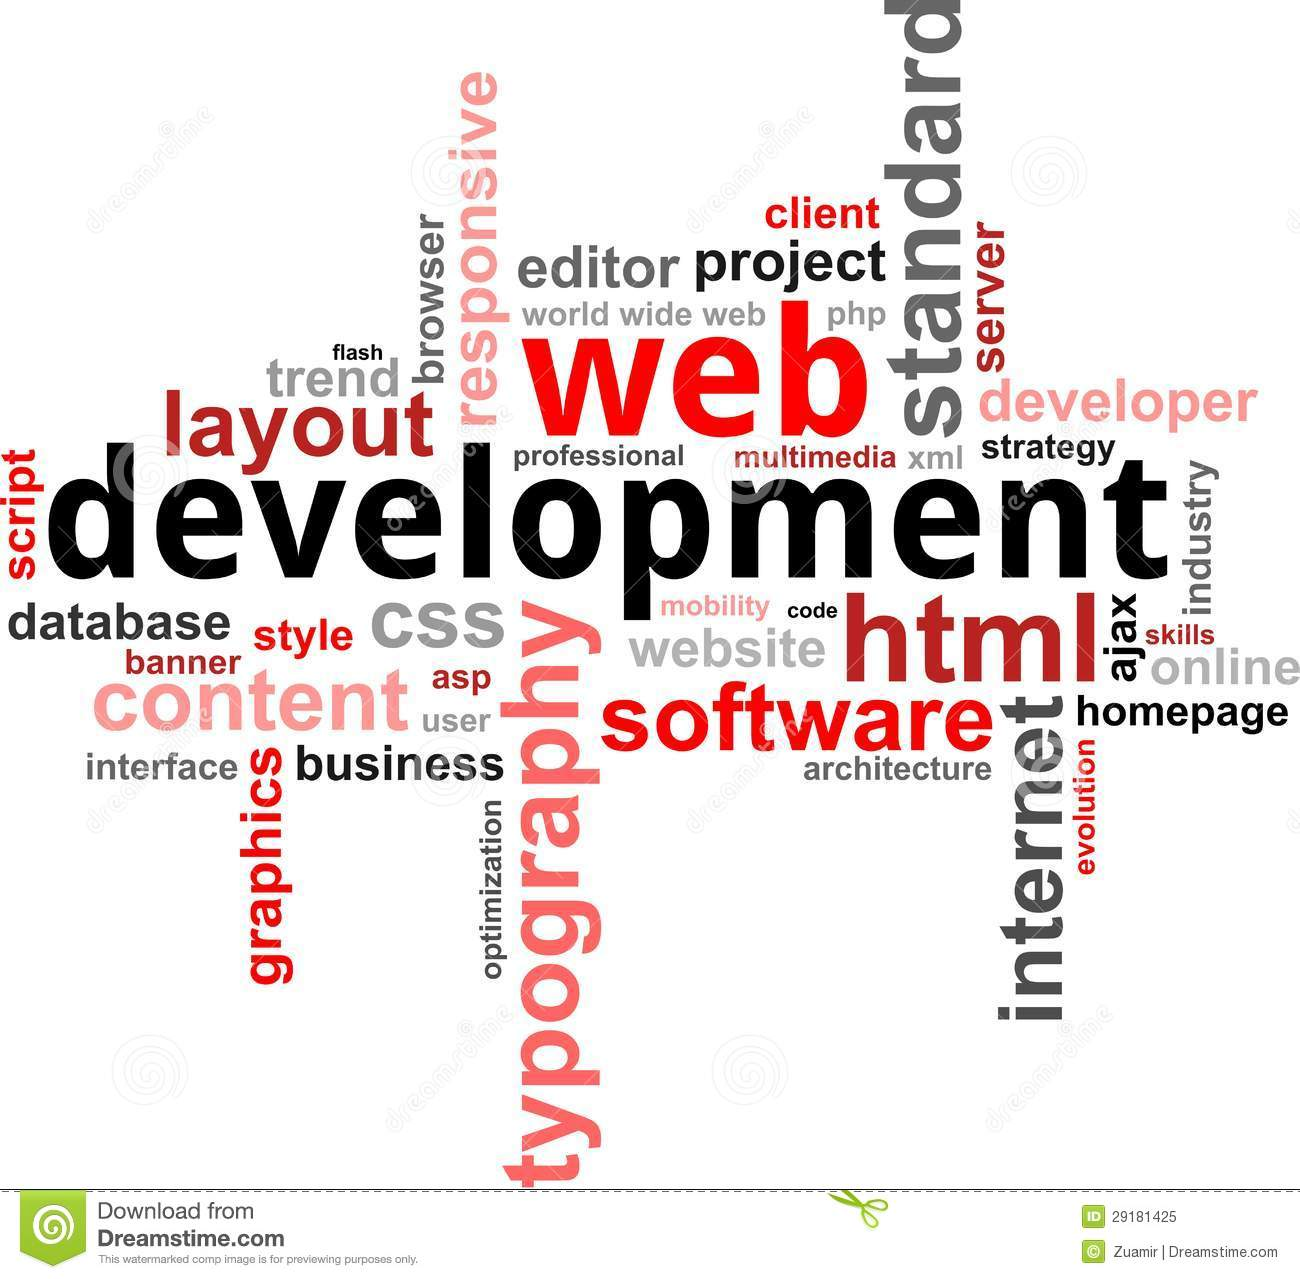 web development thesis essays in n history towards a custom admissions essay uf